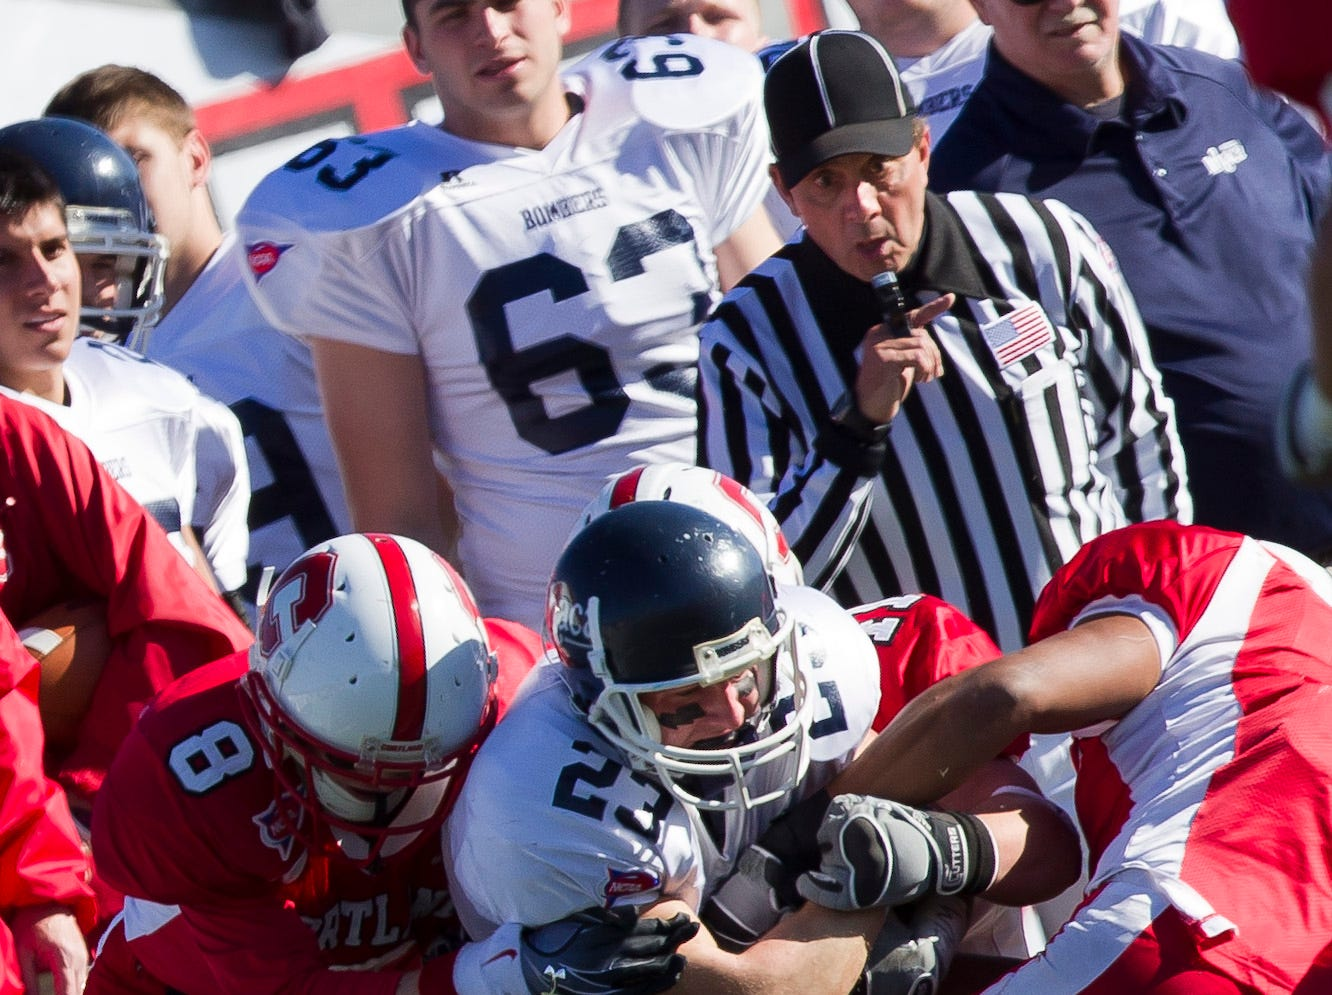 2010: Ithaca College's Dan Ruffrage is taken down by SUNY Cortland's Phil Bossman and Joe Lopaz during Saturday's Cortaca Jug in Cortland.